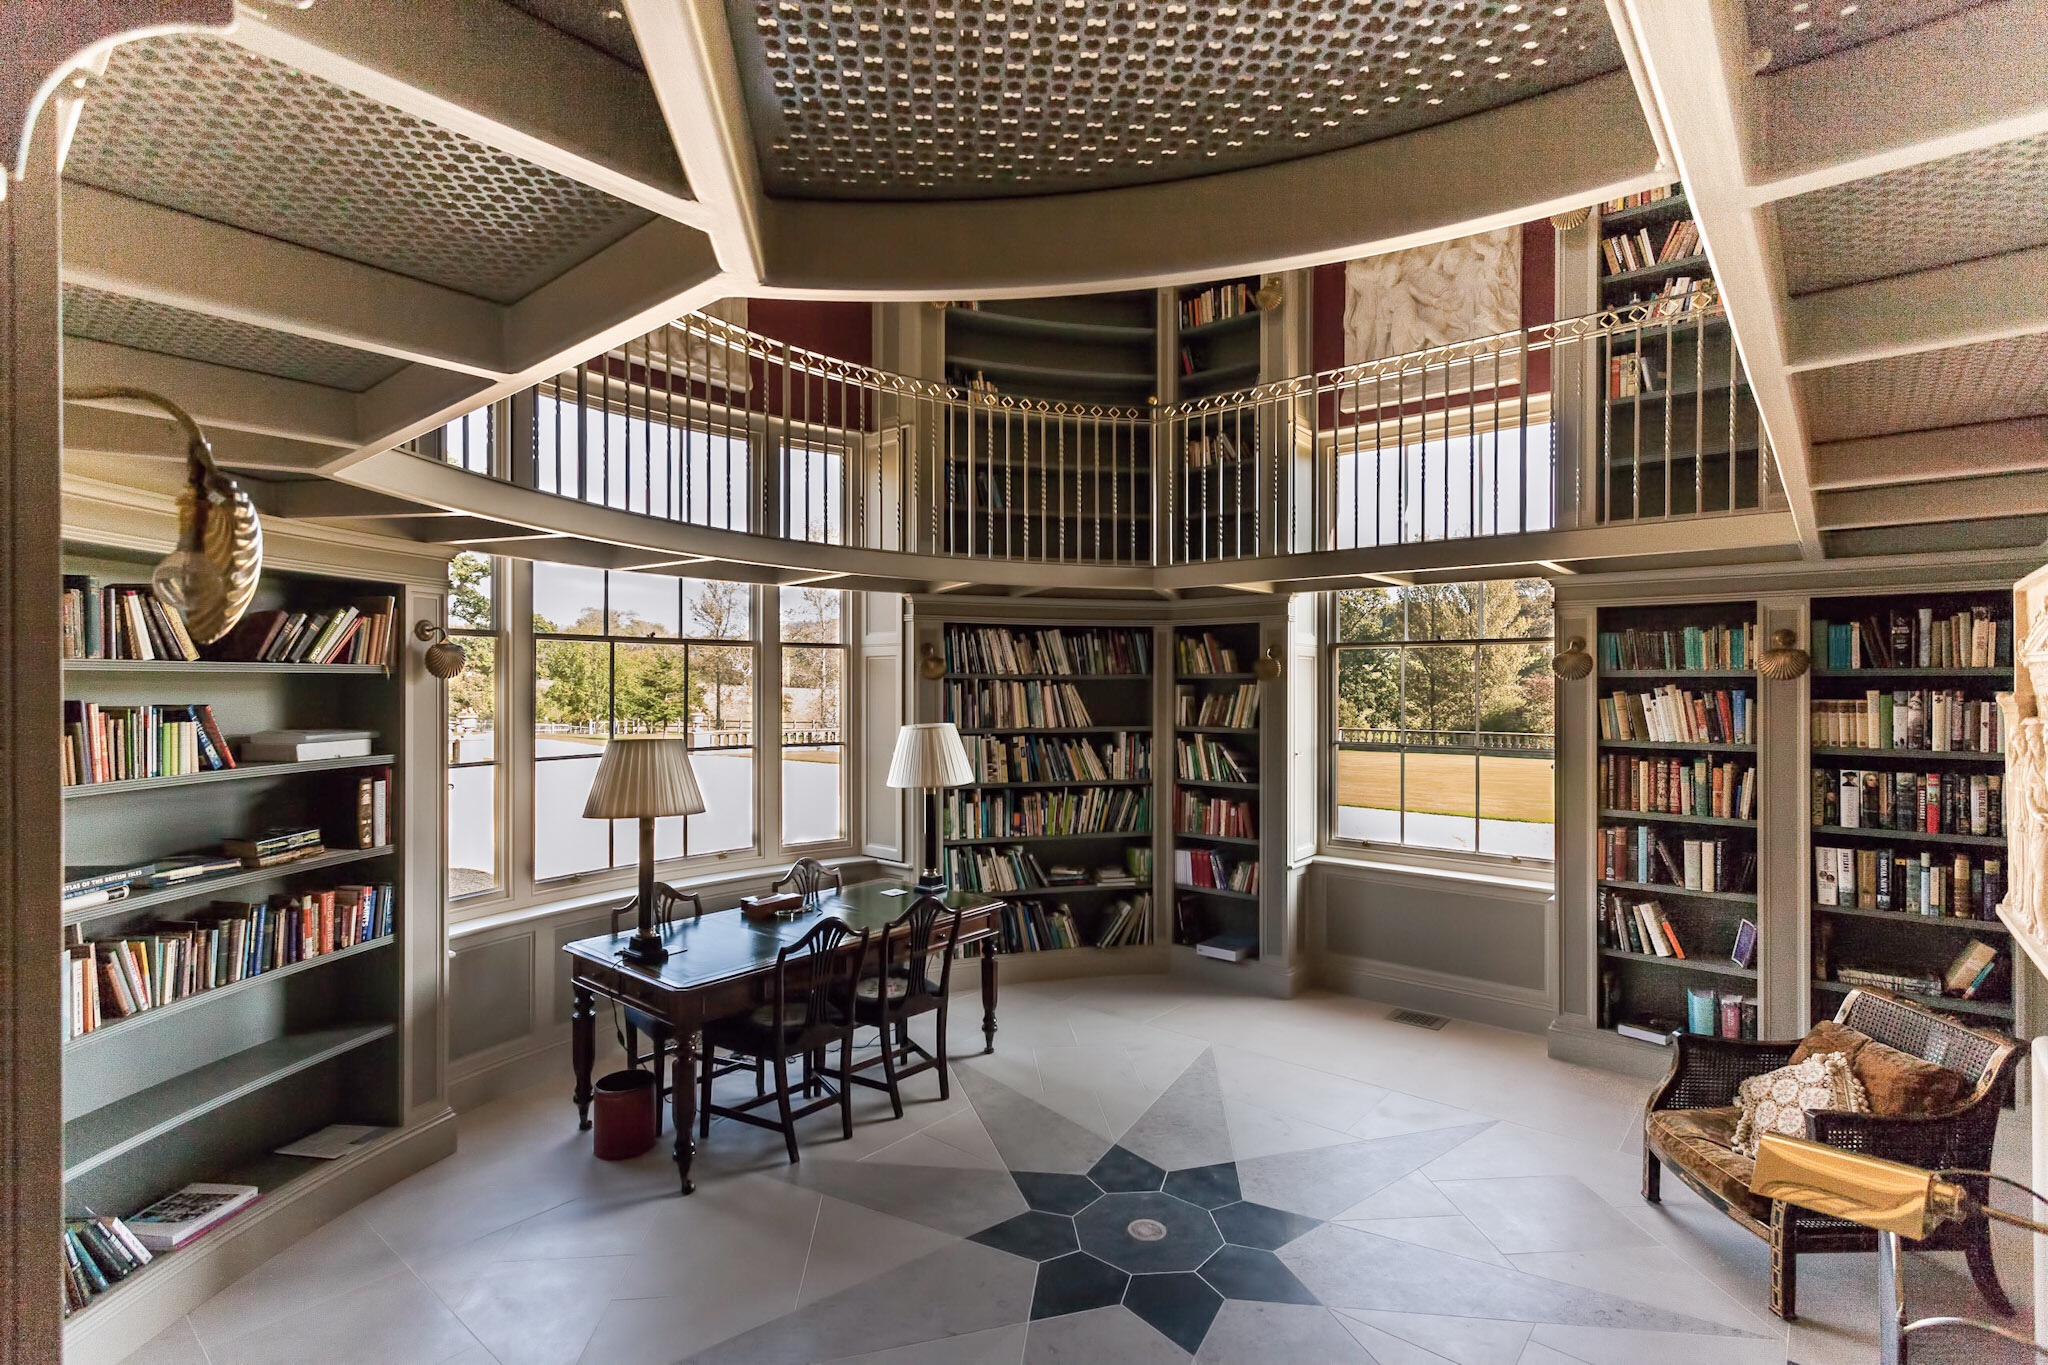 Private library. Architectural photography in Dorset